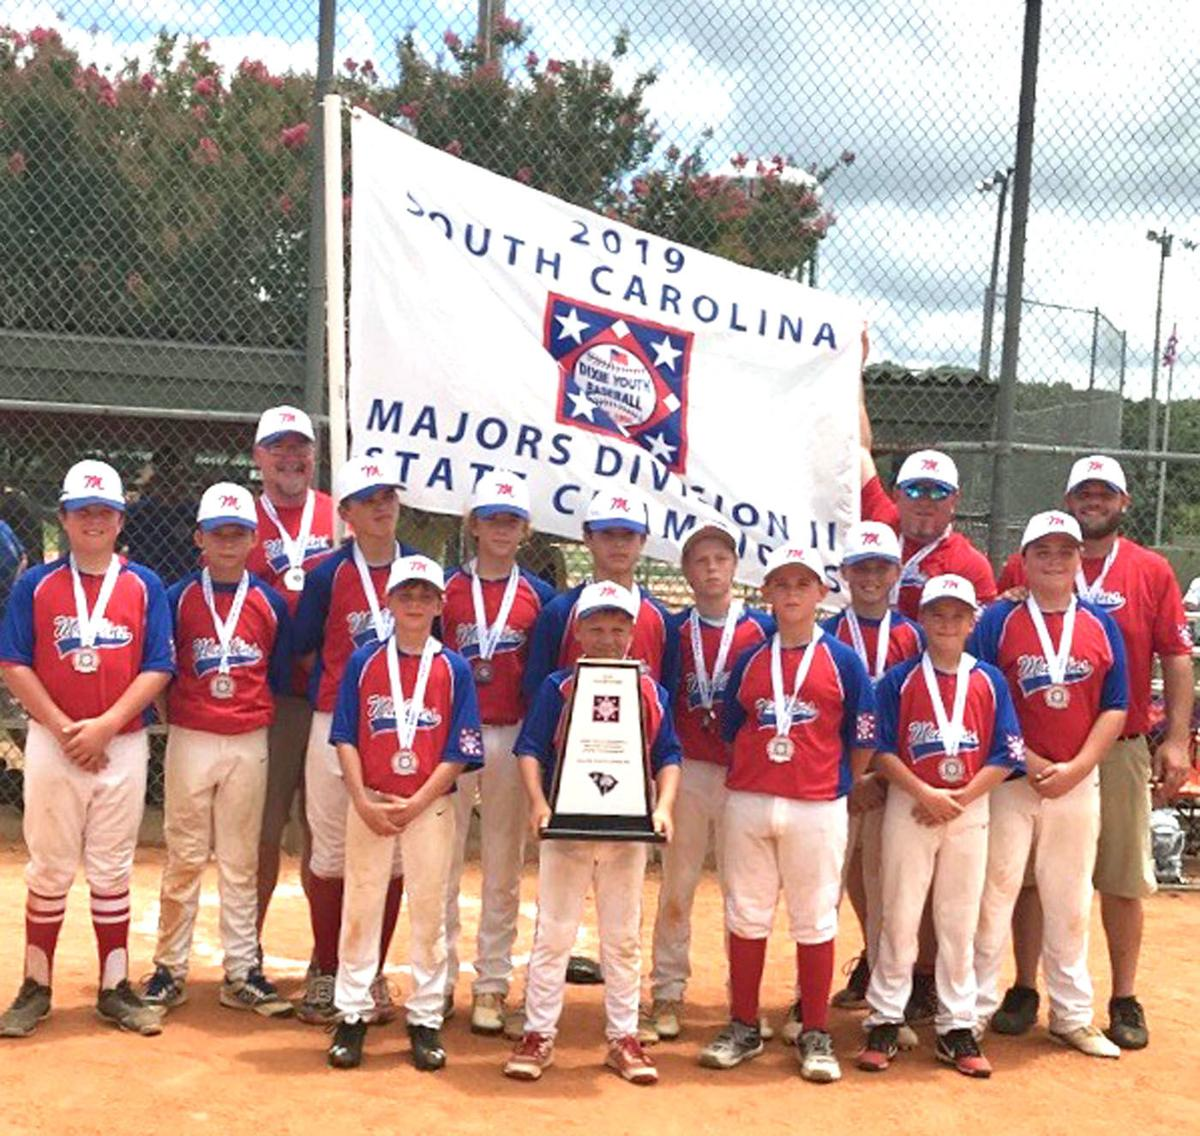 Mullins Recreation Department's 12-year old all-star team